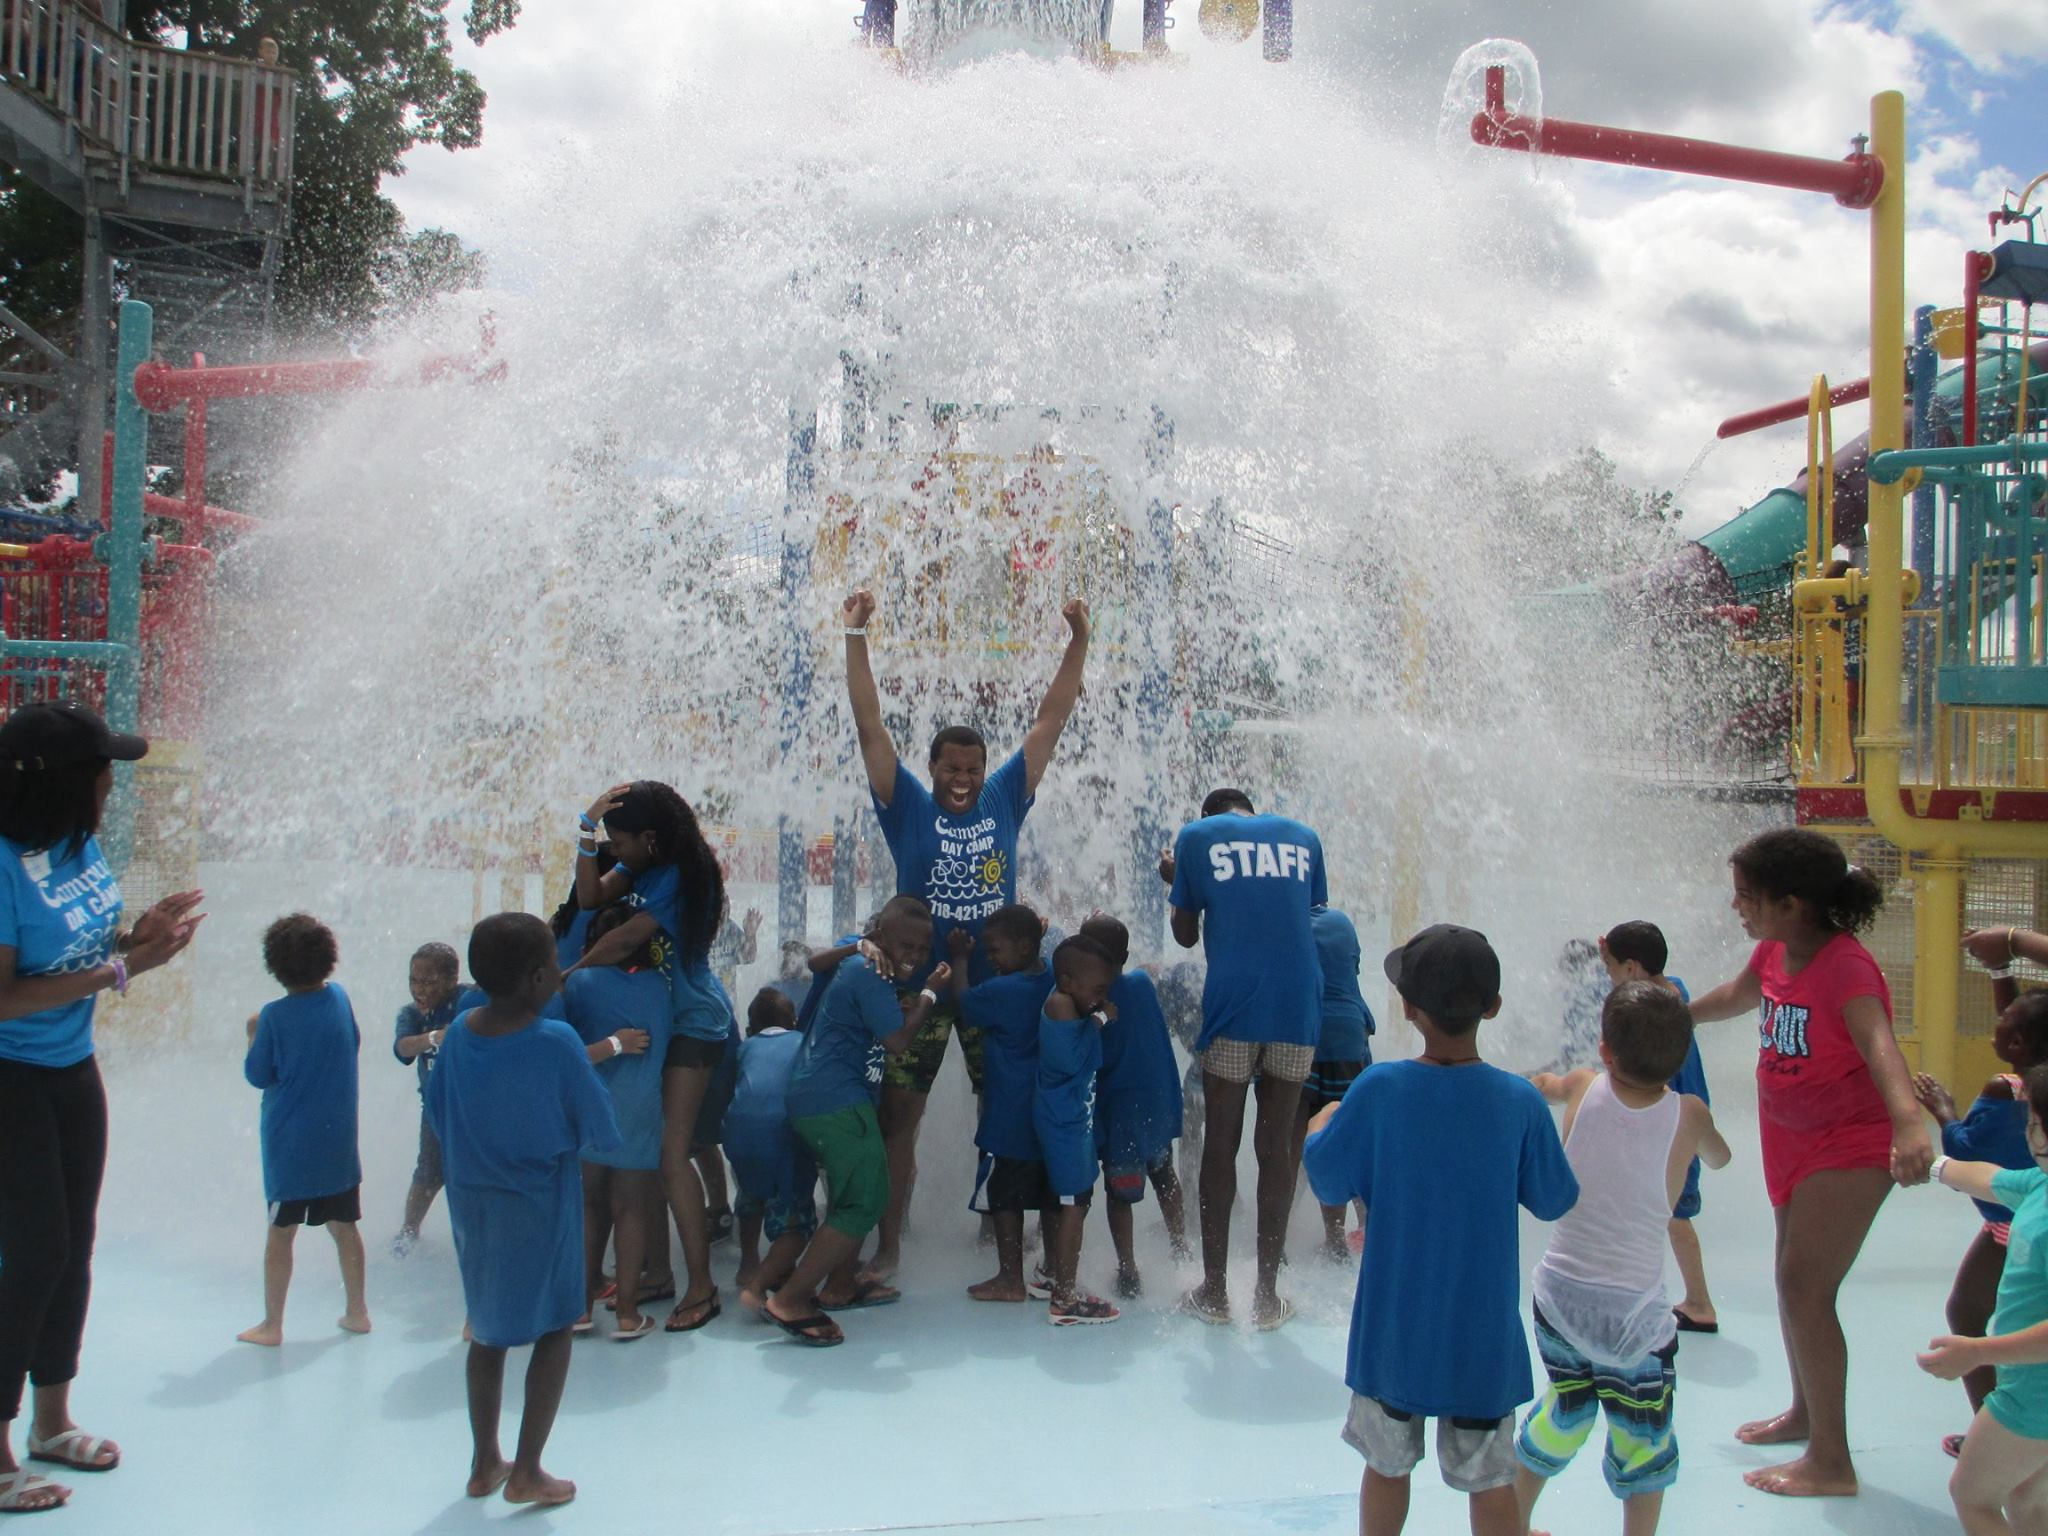 Campus Day Camp Staff and Campers Enjoying the Huge Flood of Water at the Water Park